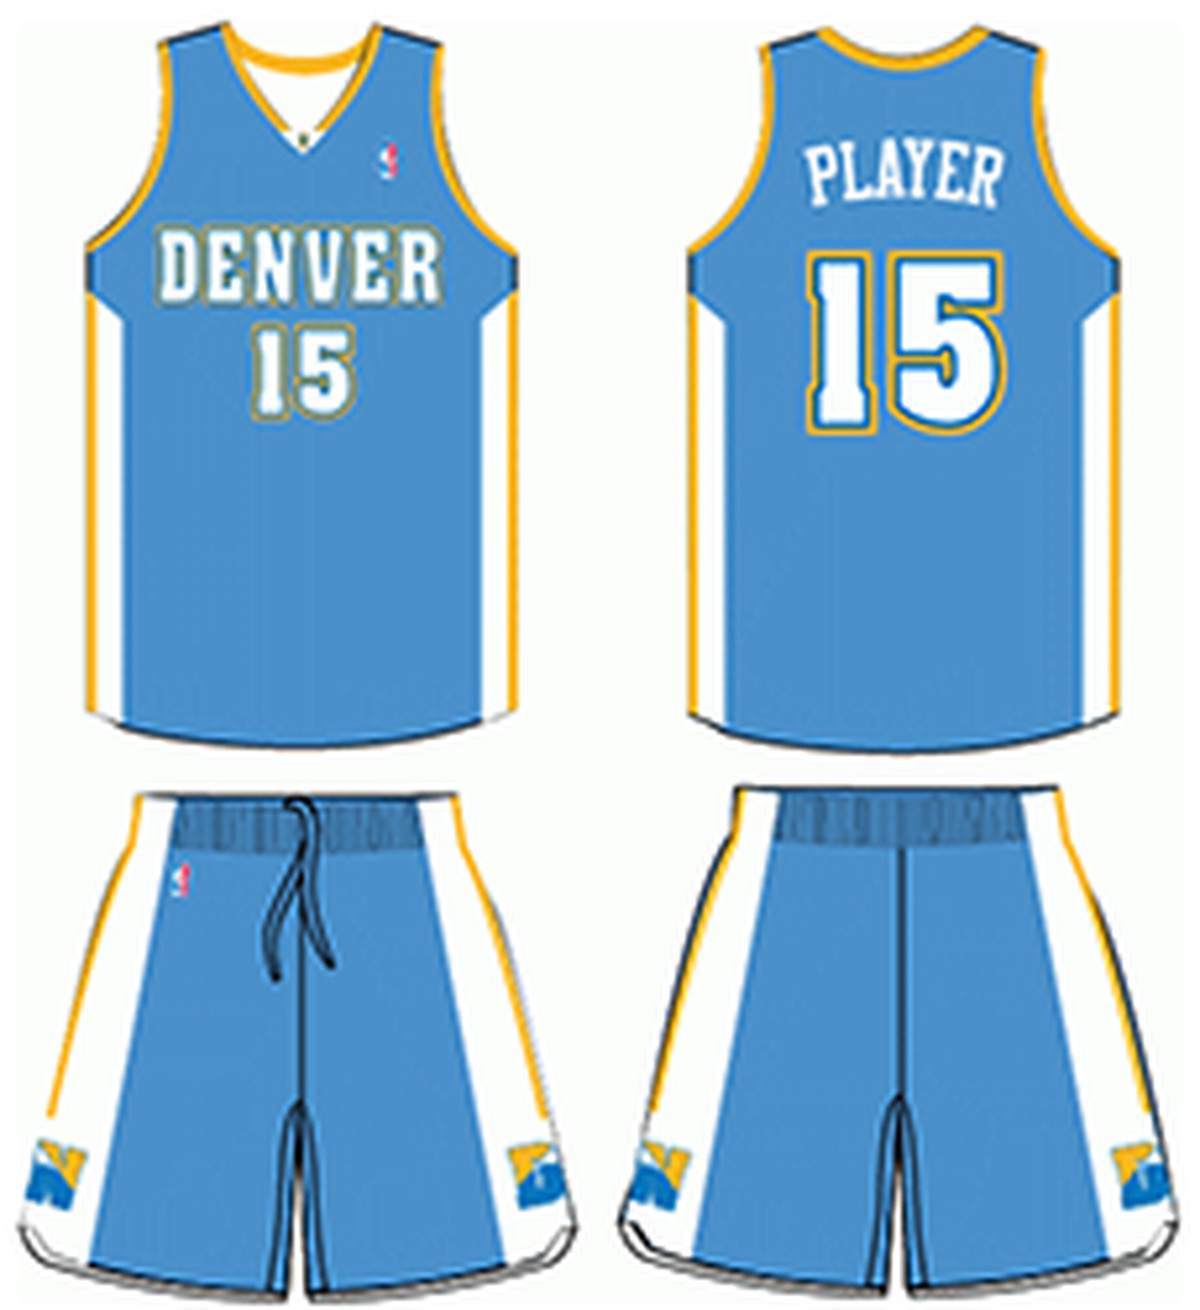 Denver Nuggets: Who Wore It Best?